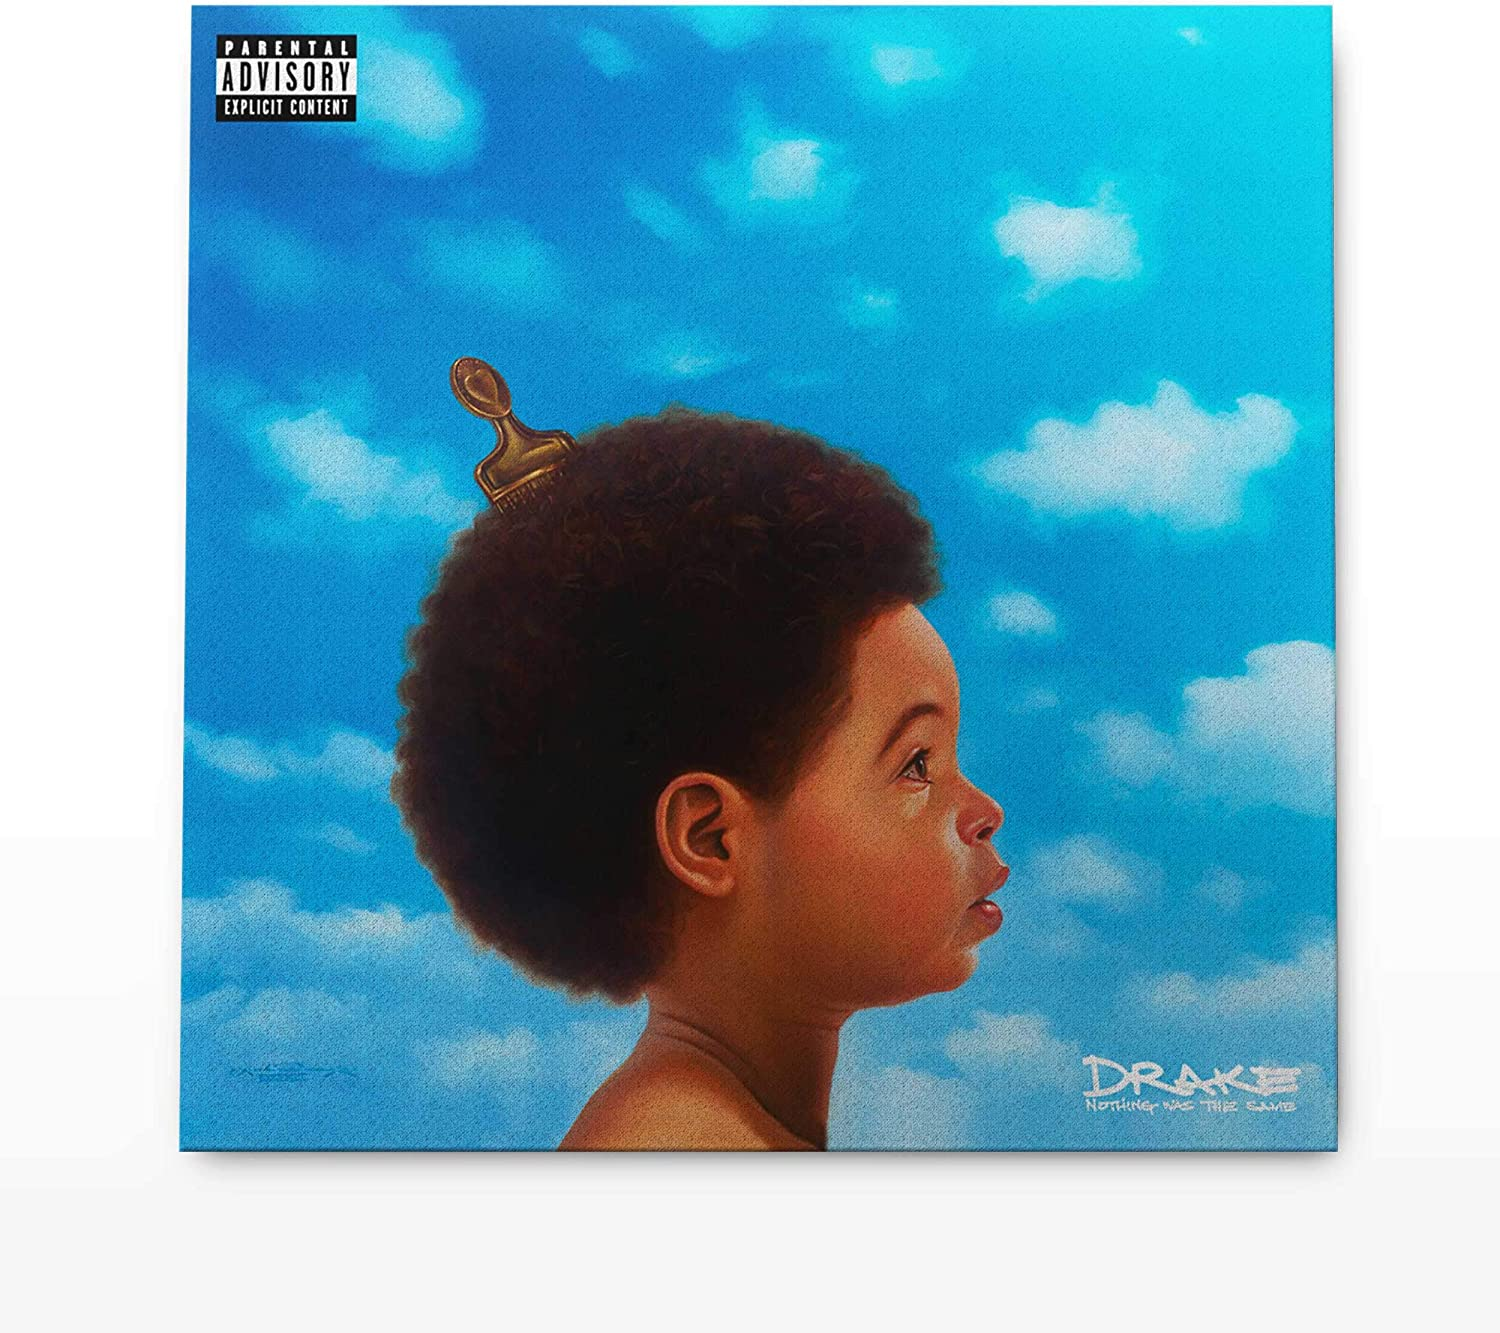 Drake Nothing Was The Same Cover Poster Album Art Print B-101